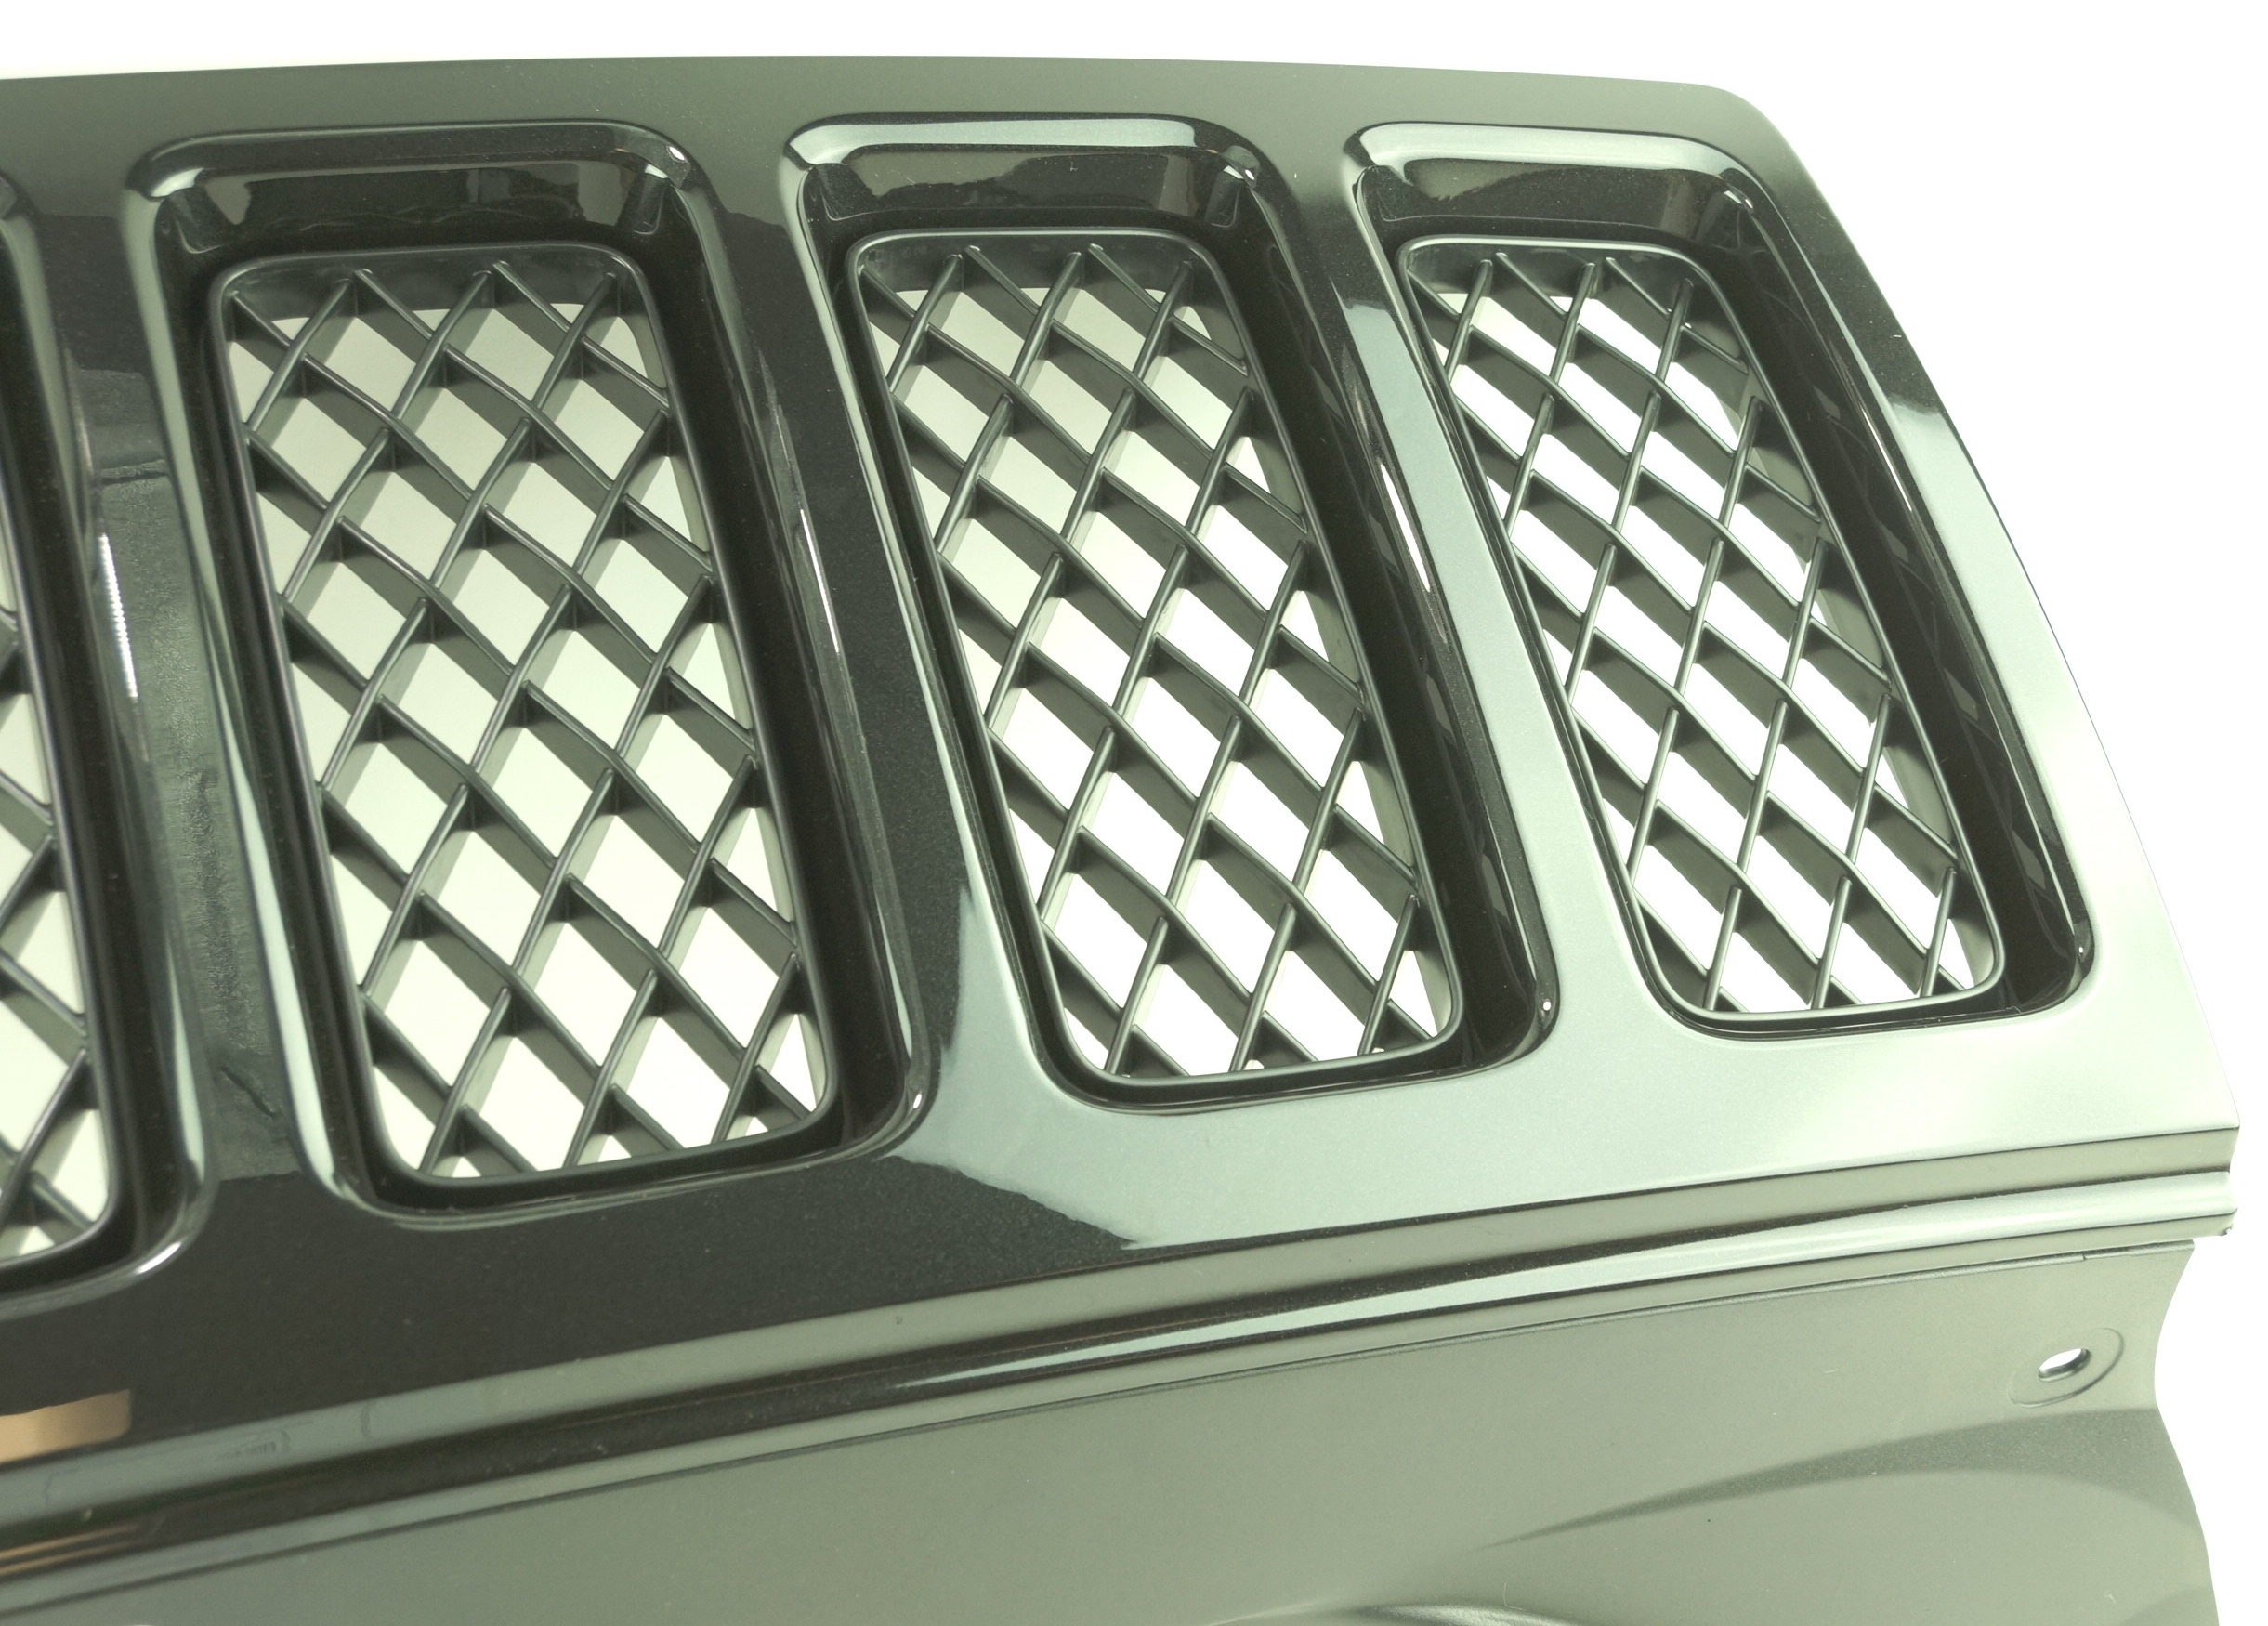 New OEM 1FW131XR-AC 08-10 Jeep Grand Cherokee Black Radiator Grille Assembly - image 6